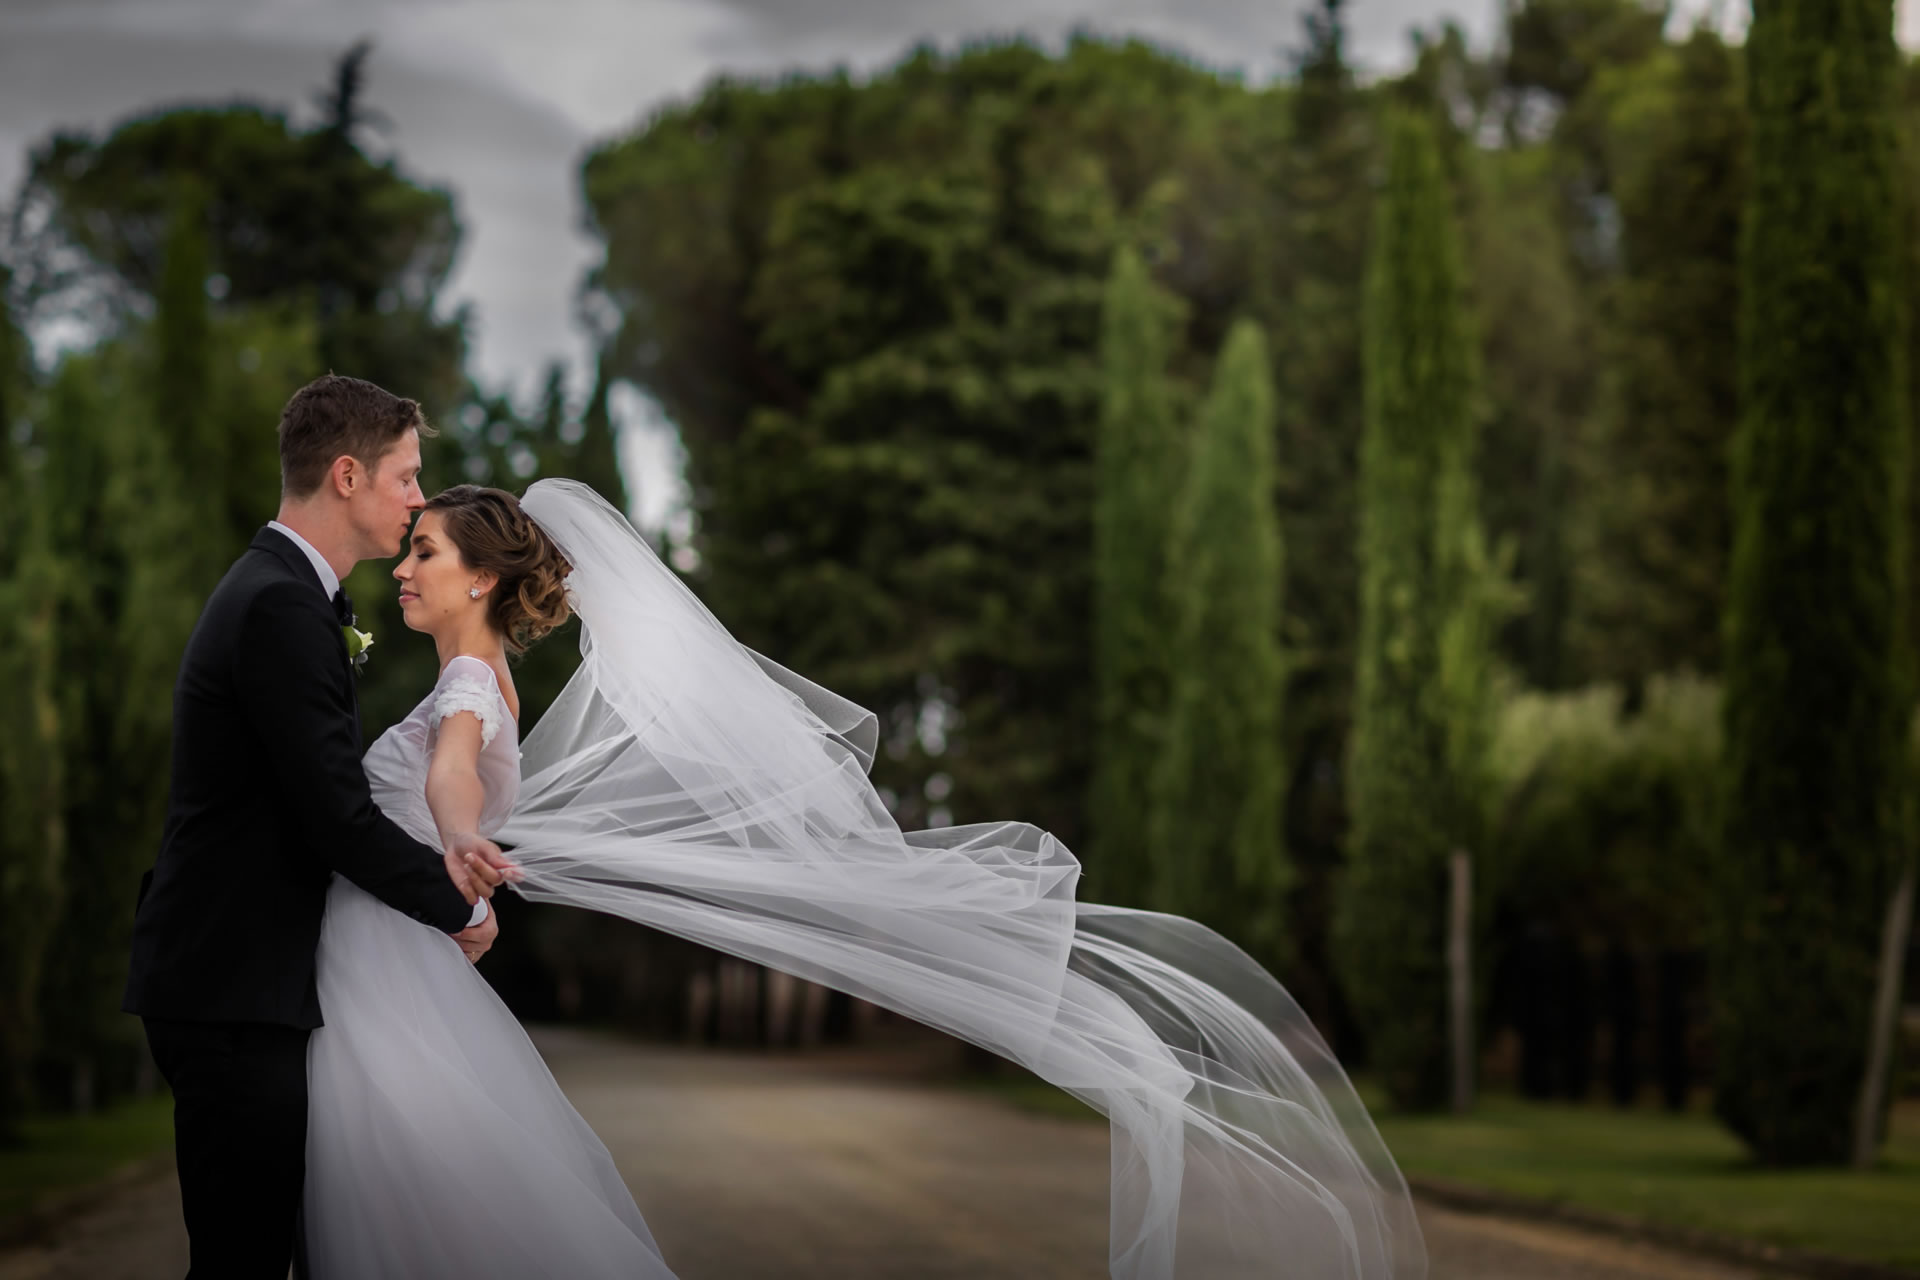 Air - 24 :: Amazing wedding day at Il Borro :: Luxury wedding photography - 23 :: Air - 24